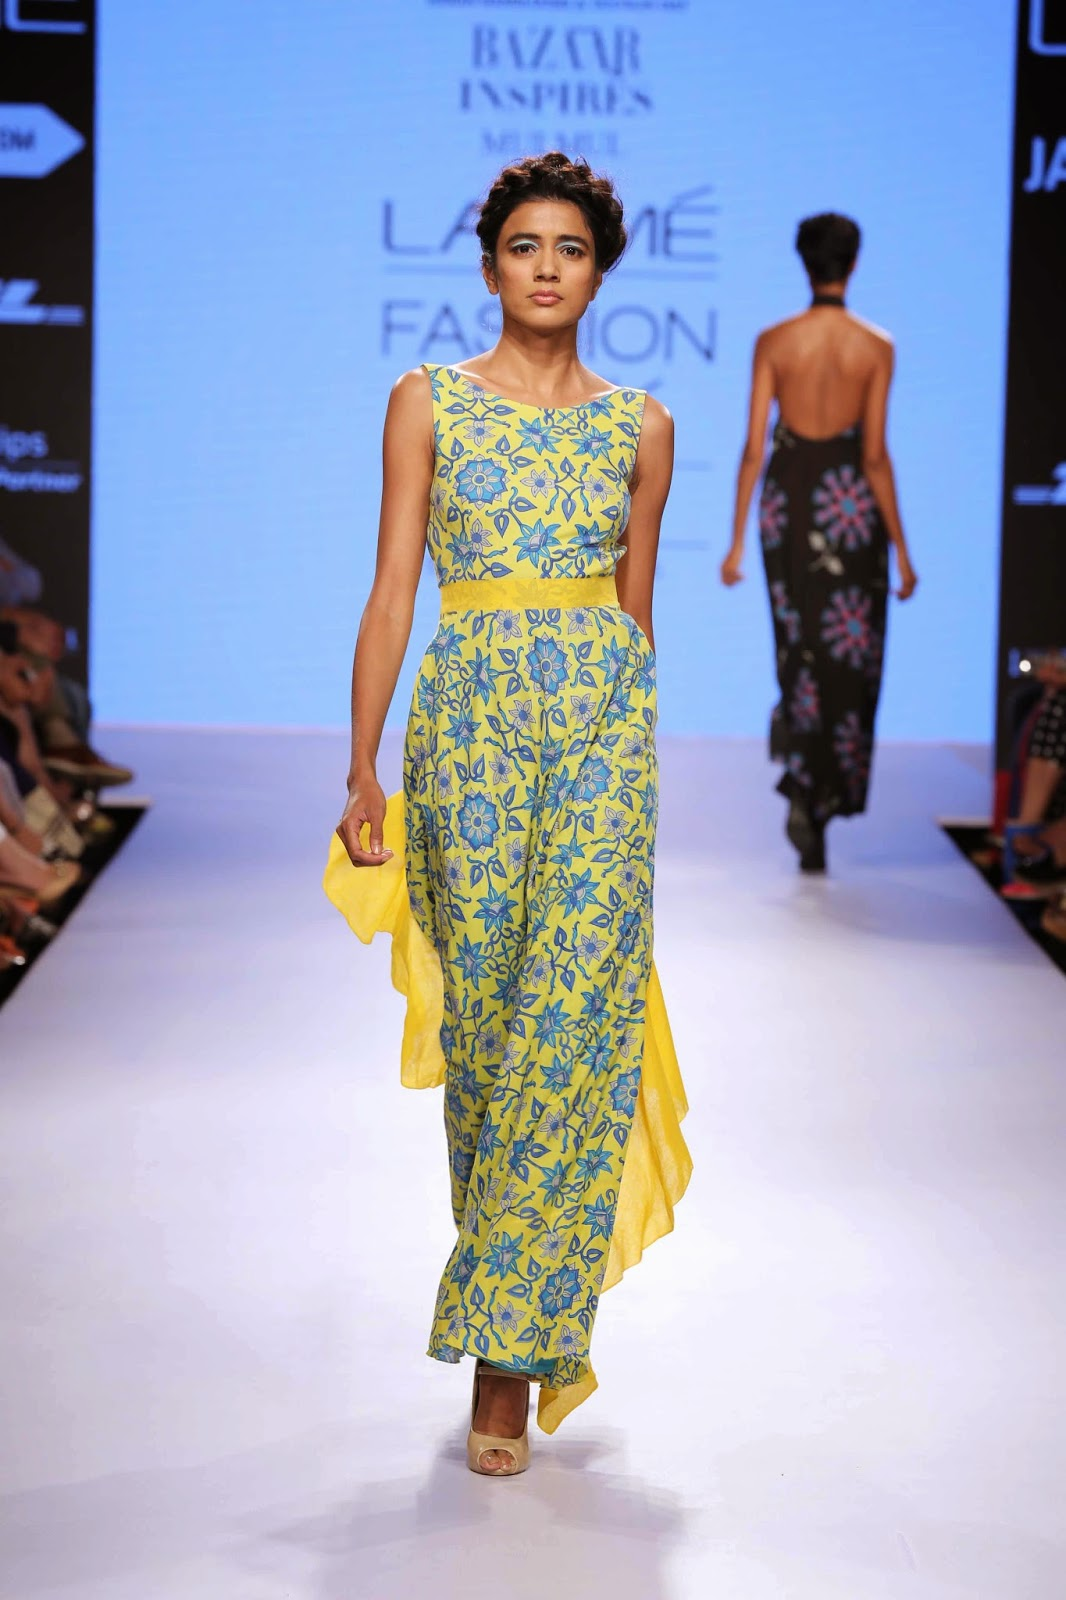 http://aquaintperspective.blogspot.in/, LIFW Day 2, Anupama Dayal